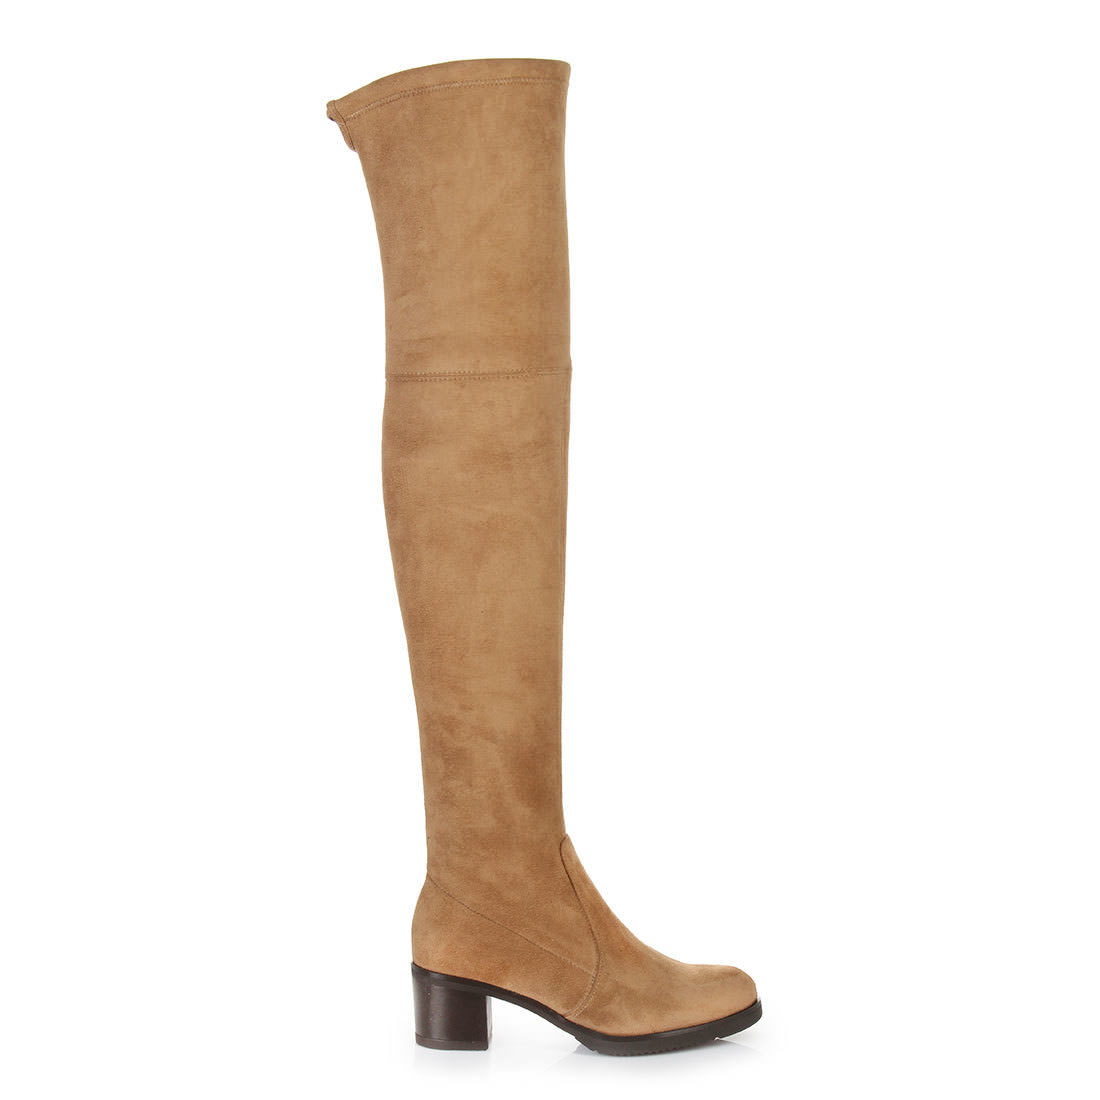 655a7347b05 Buffalo over-the-knee boots in camel buy online in BUFFALO Online ...